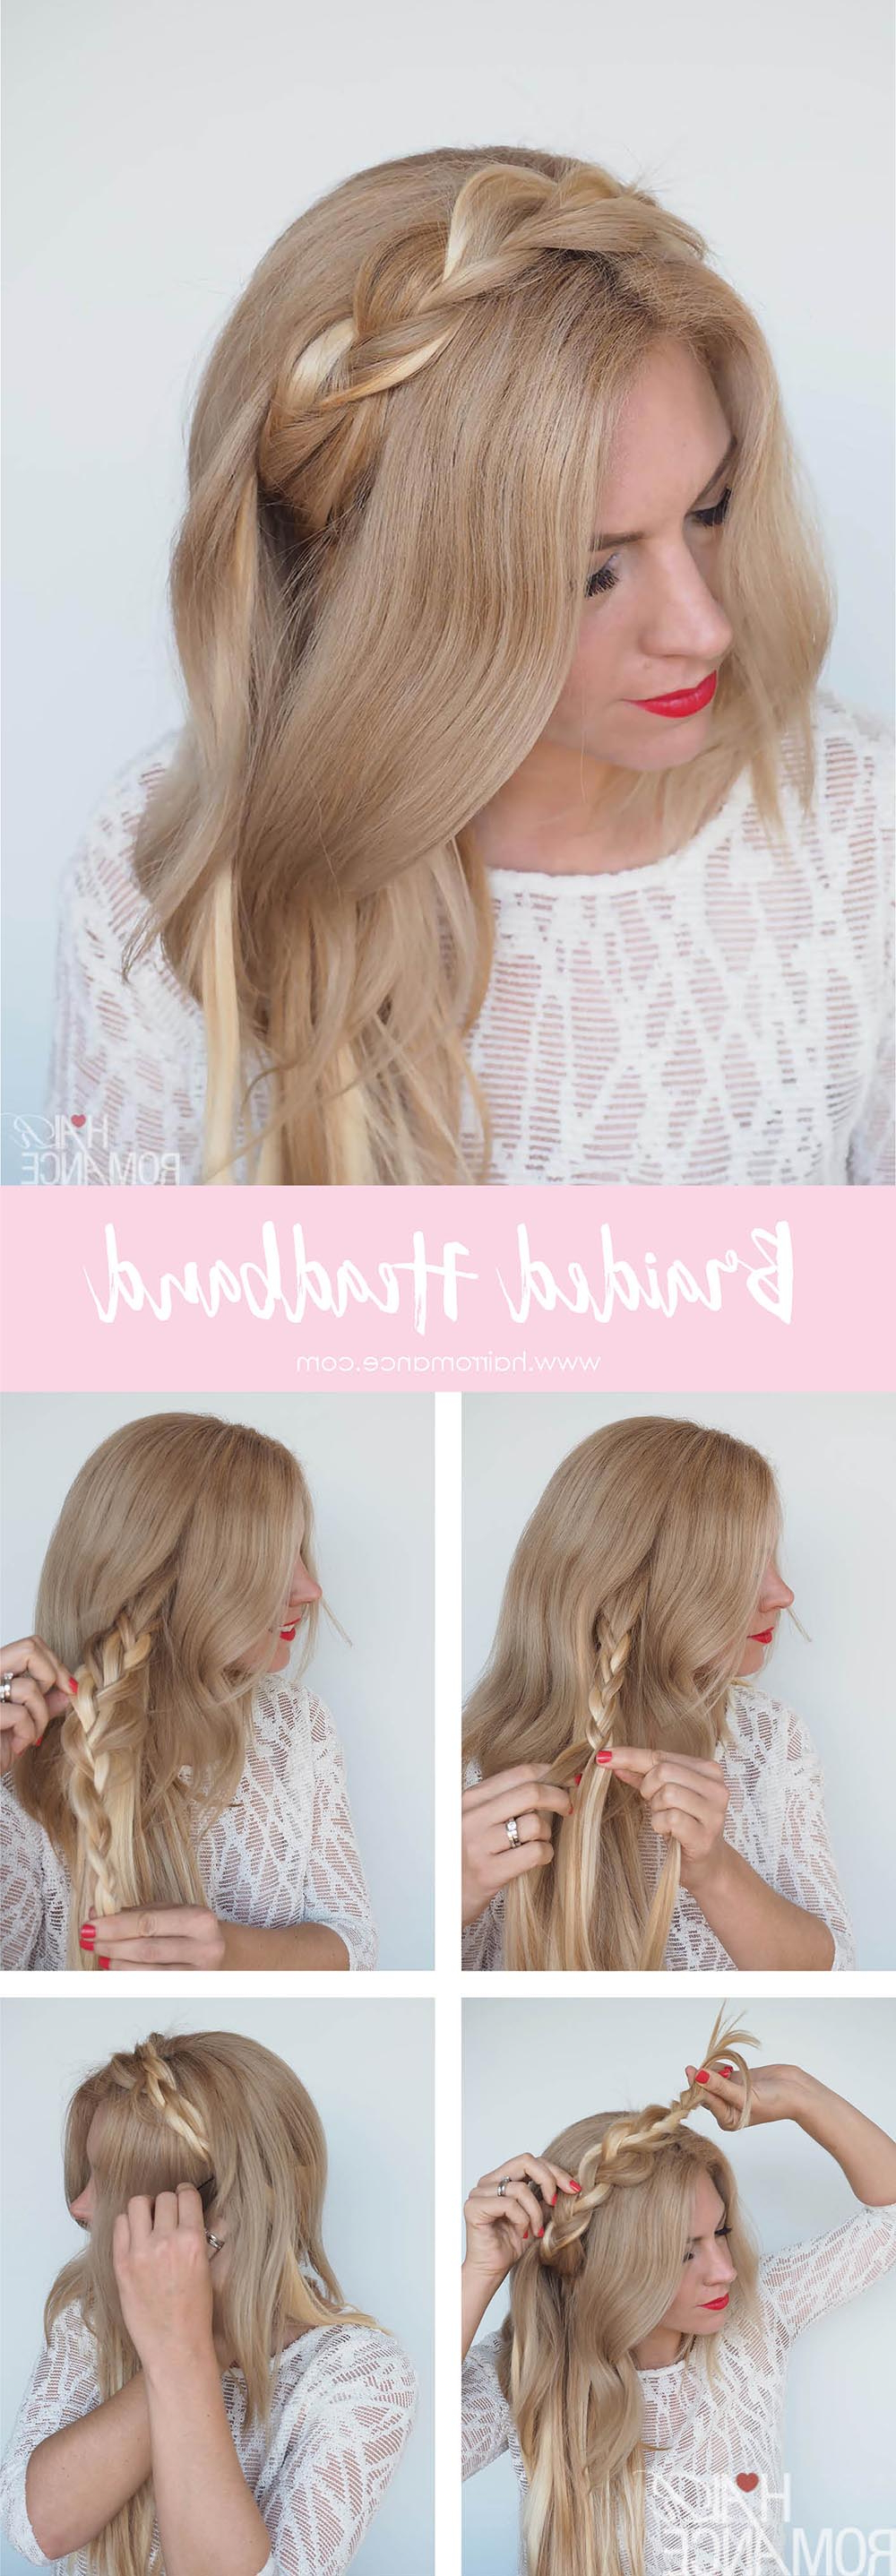 Favorite Full Headband Braided Hairstyles Inside Braided Headband Hairstyle Tutorial – Hair Romance (View 15 of 20)